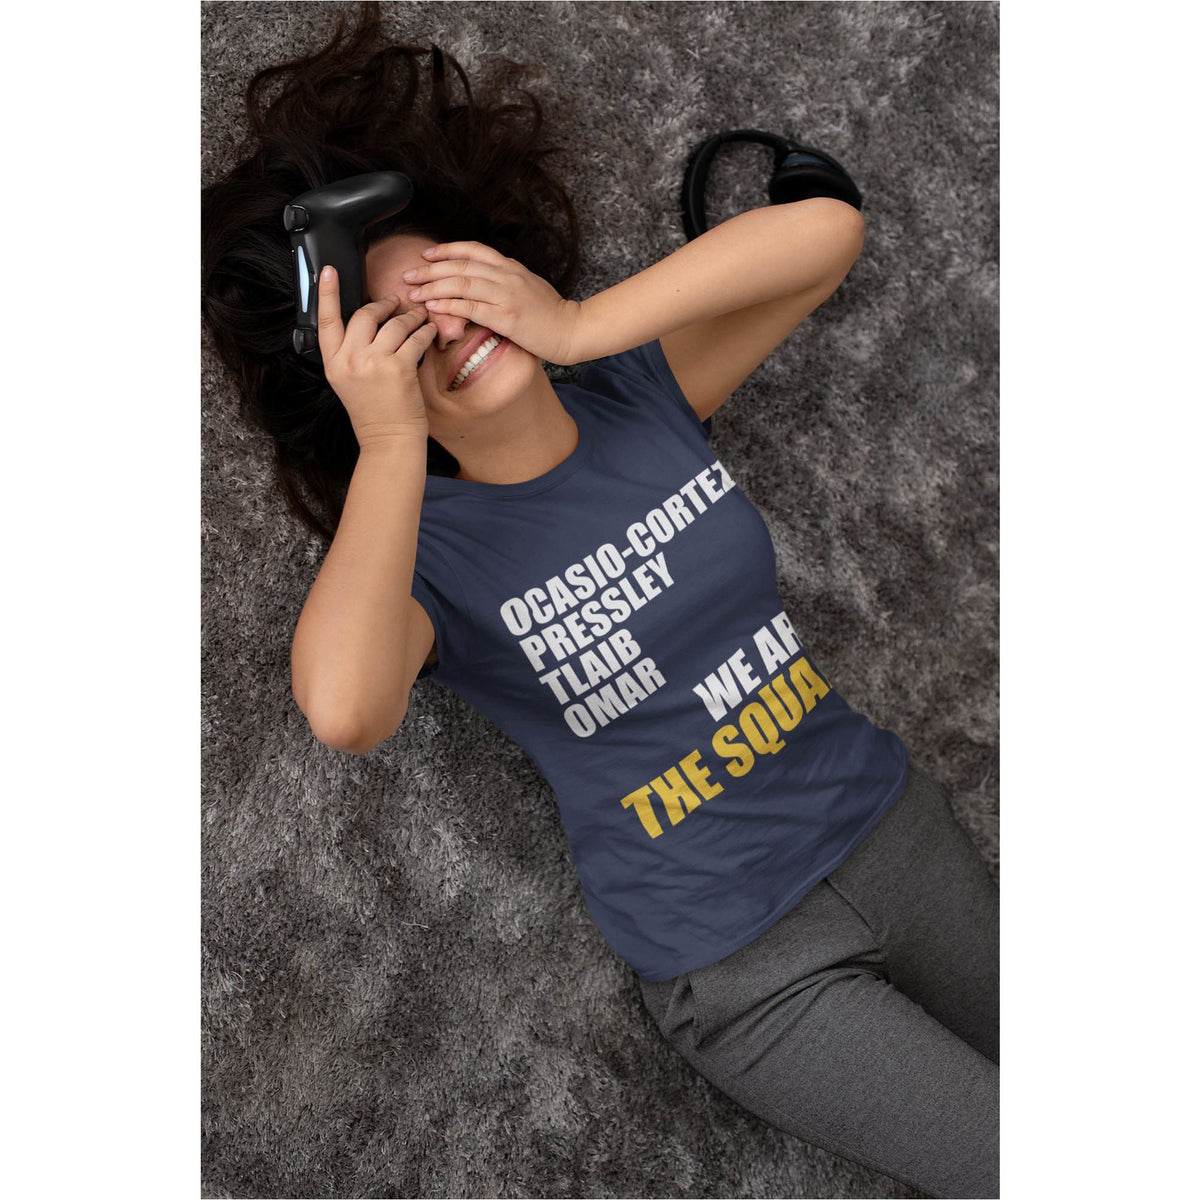 The Squad Women's Premium T-Shirt